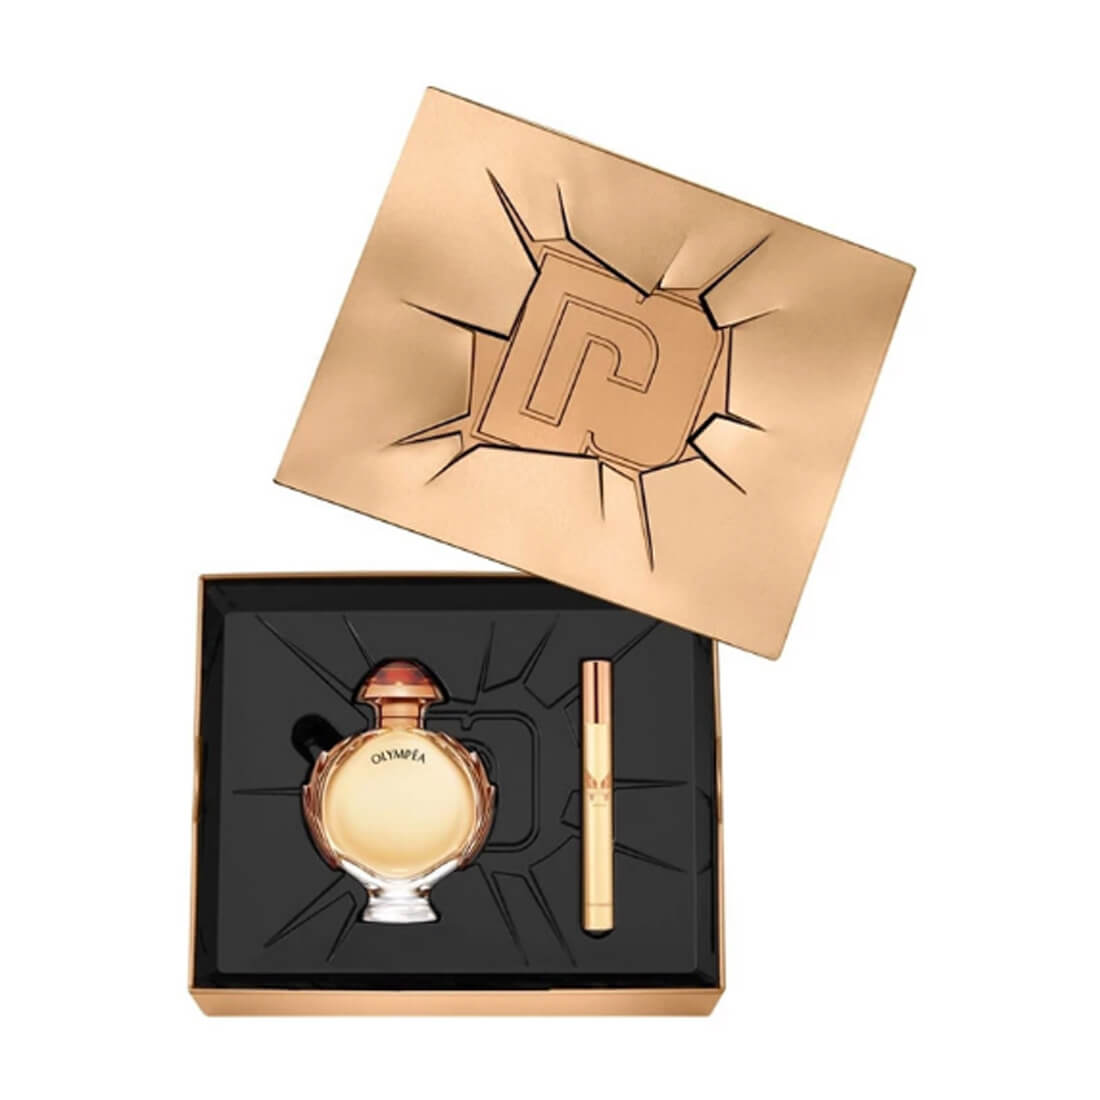 Paco Rabanne Olympea Intense Gift Set